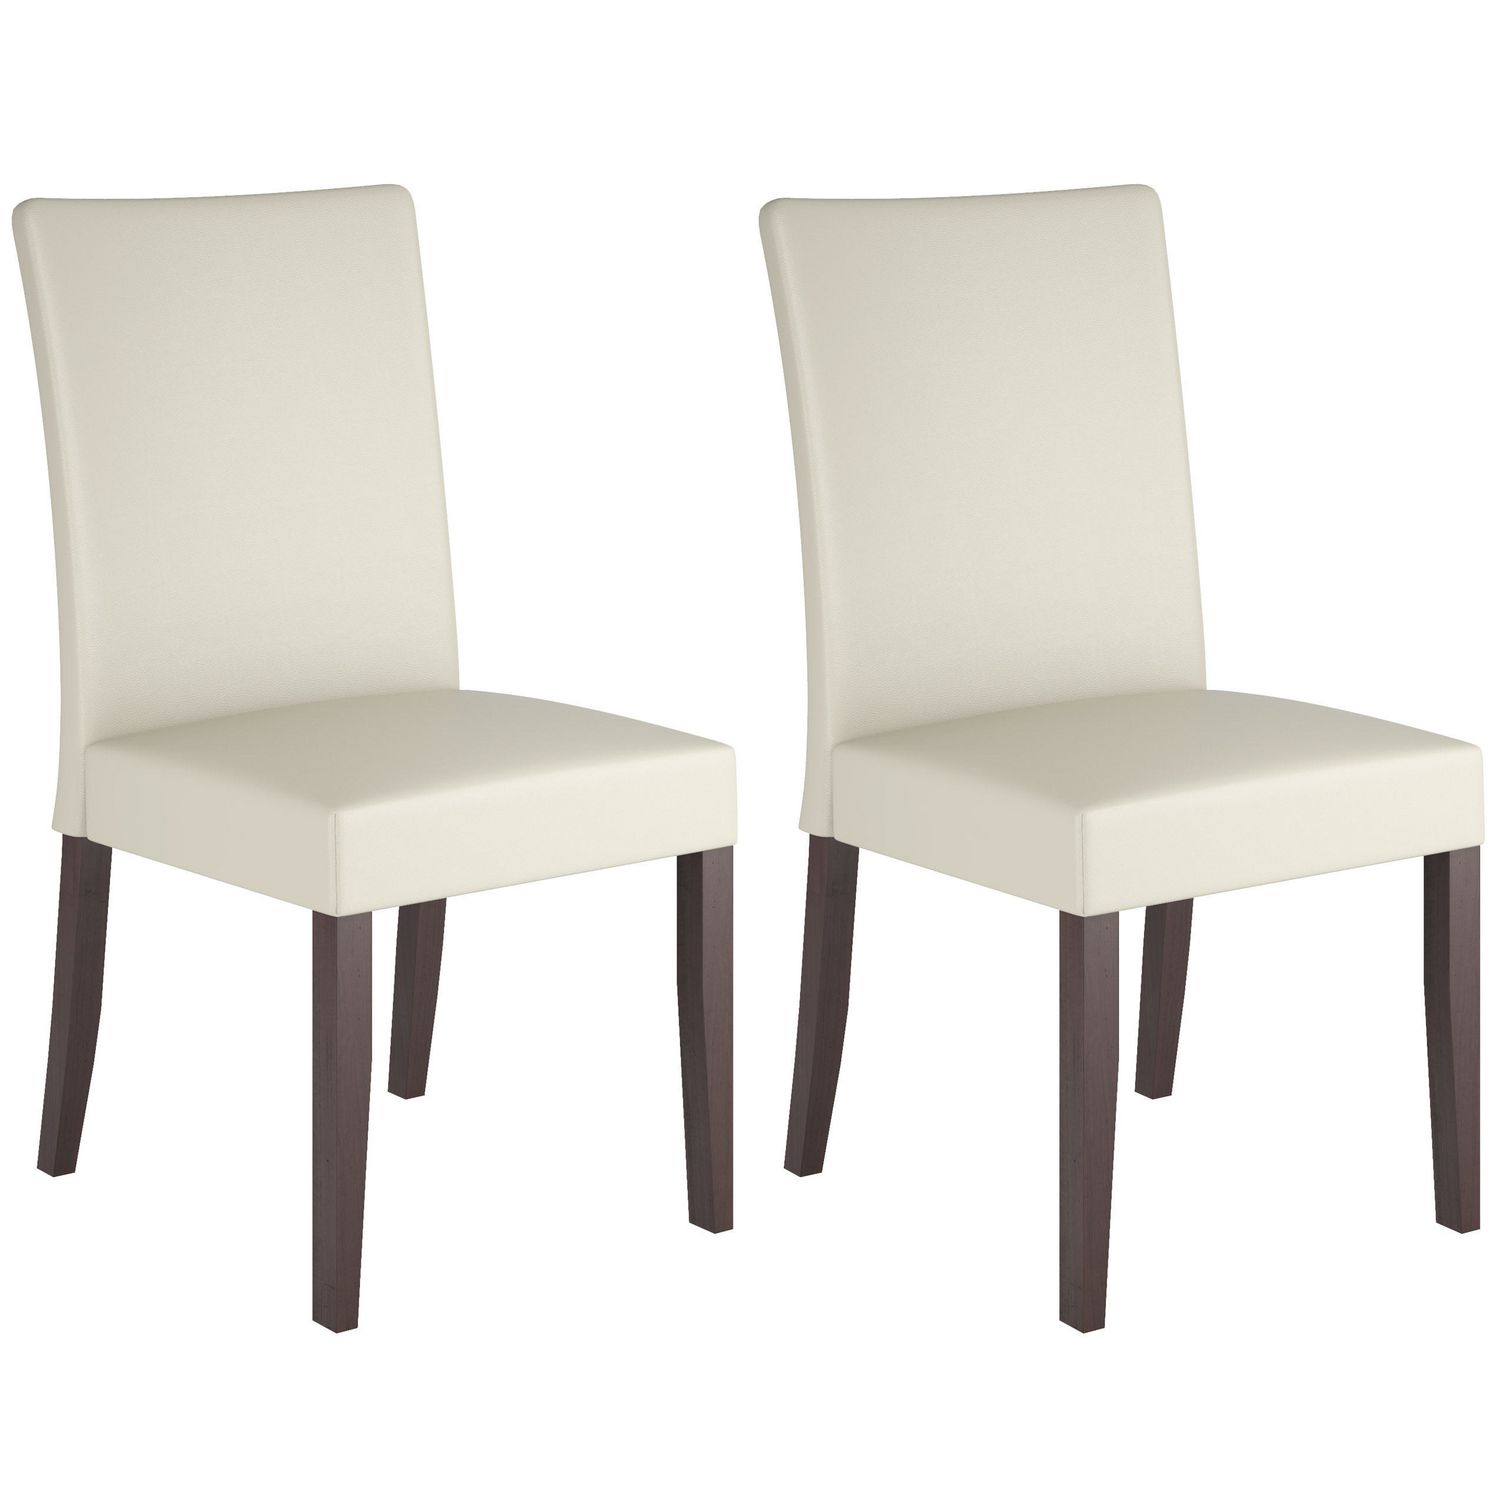 CorLiving Atwood Cream Leatherette Dining Chairs